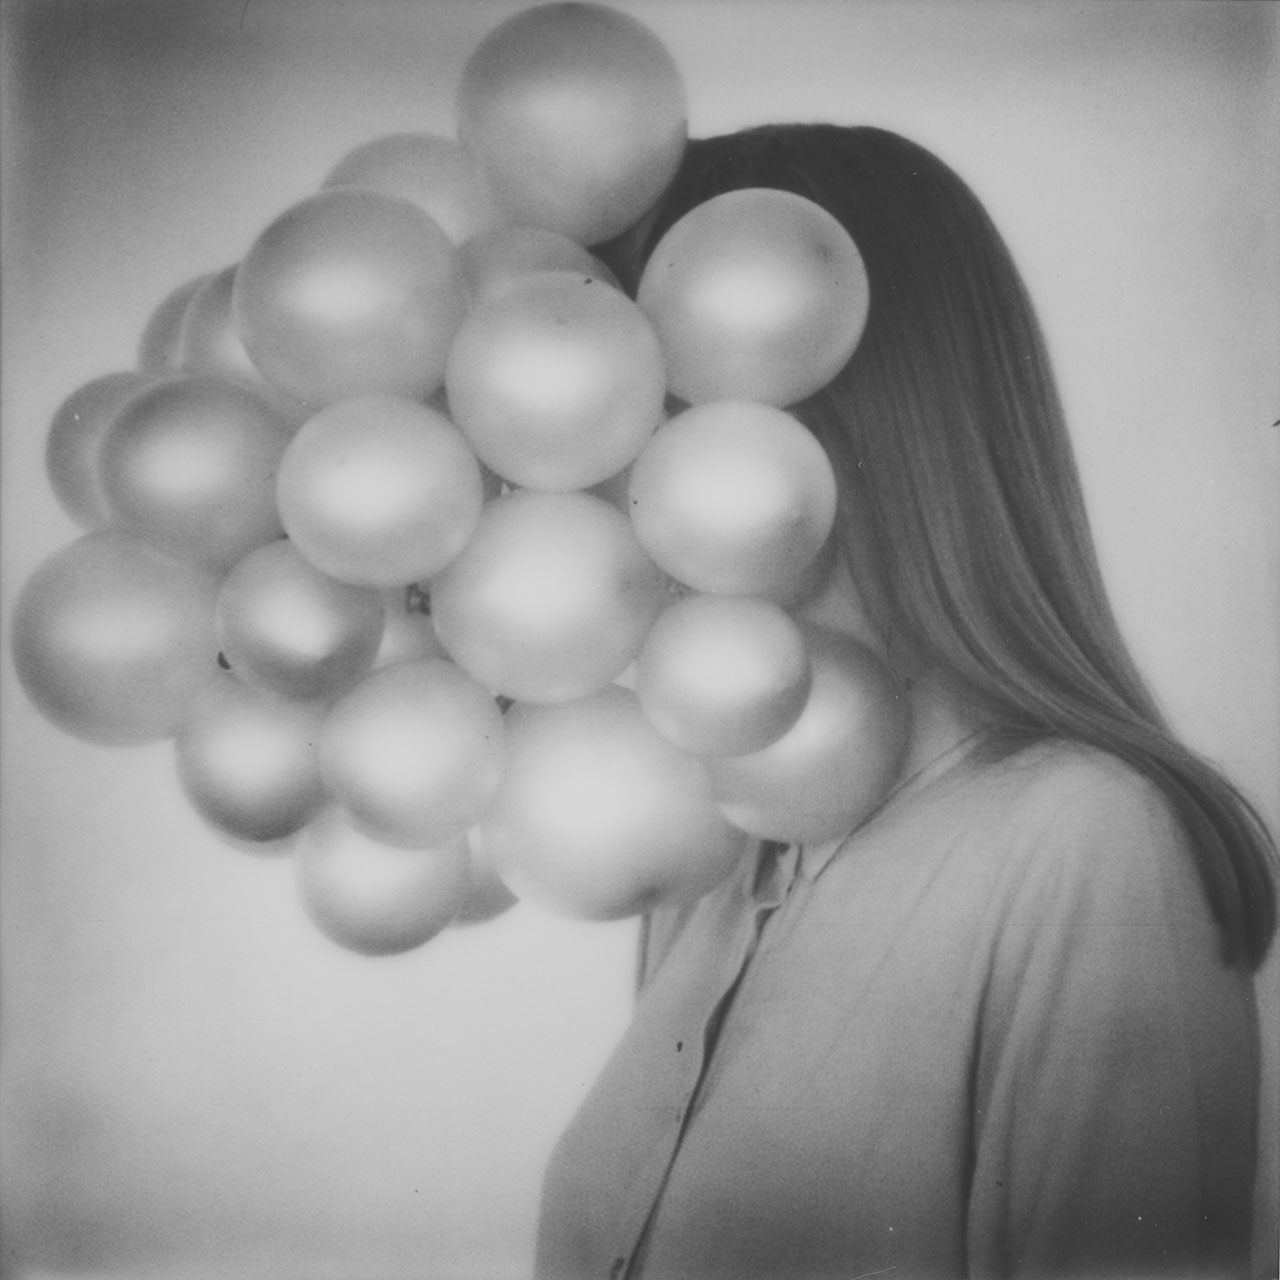 Luisa Hübner, photo from Bubbles series, 2016.